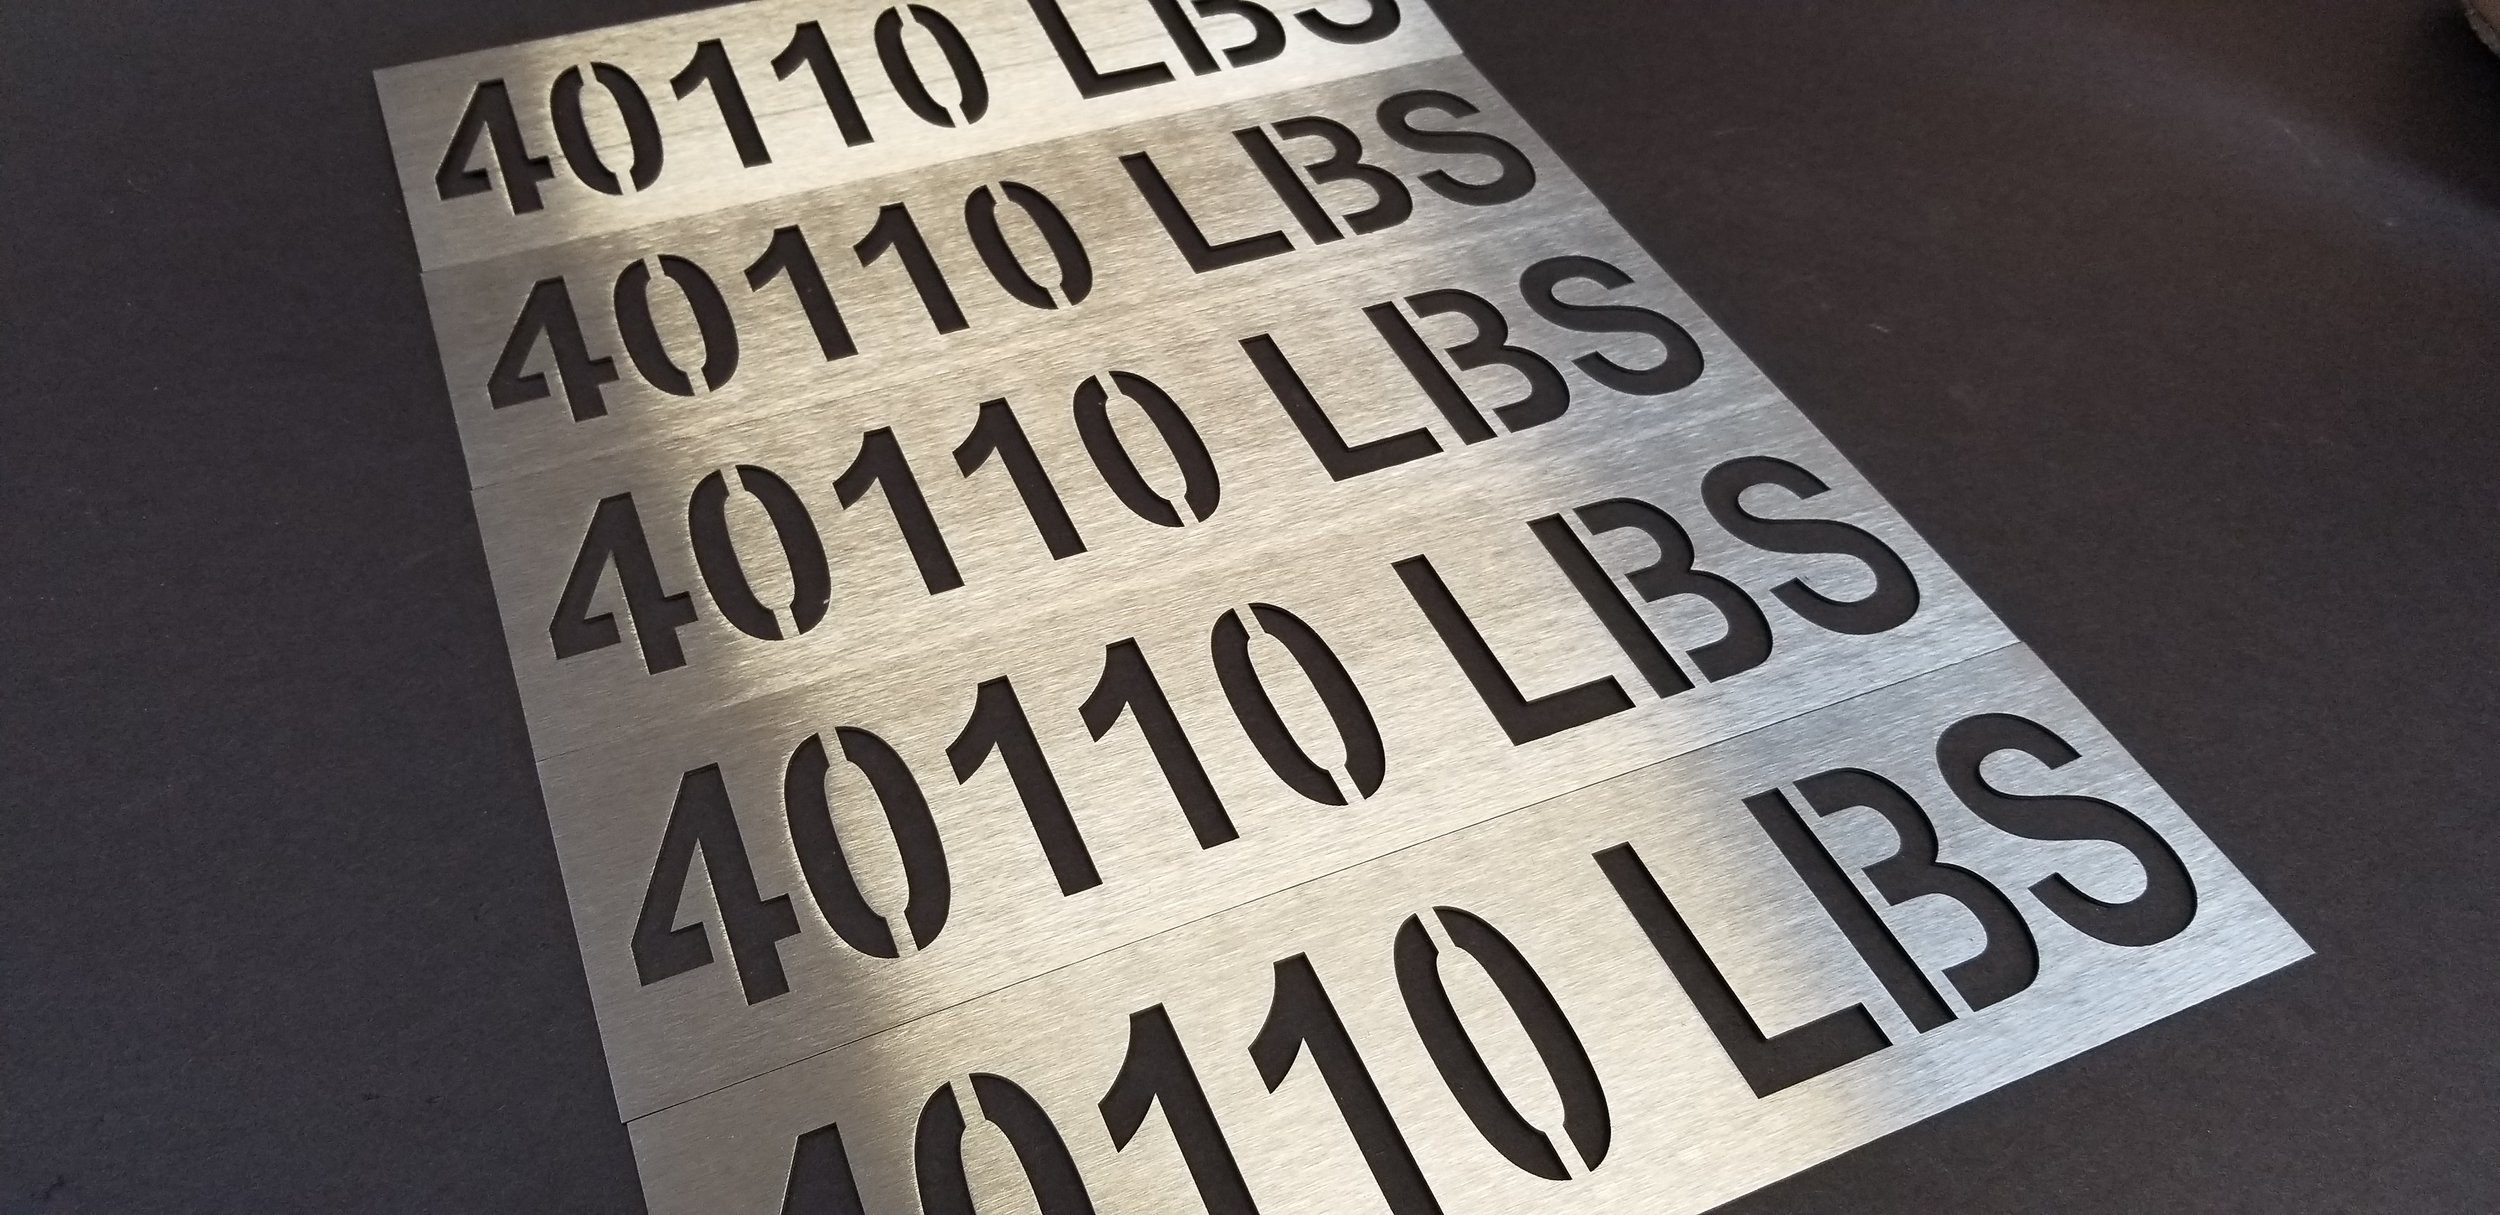 Custom Laser Cut Stainless Steel Signage - Laser Cut Metal Plates - Laser Cut Metal Tags - Industrial Engraving Services - Engrave It Houston